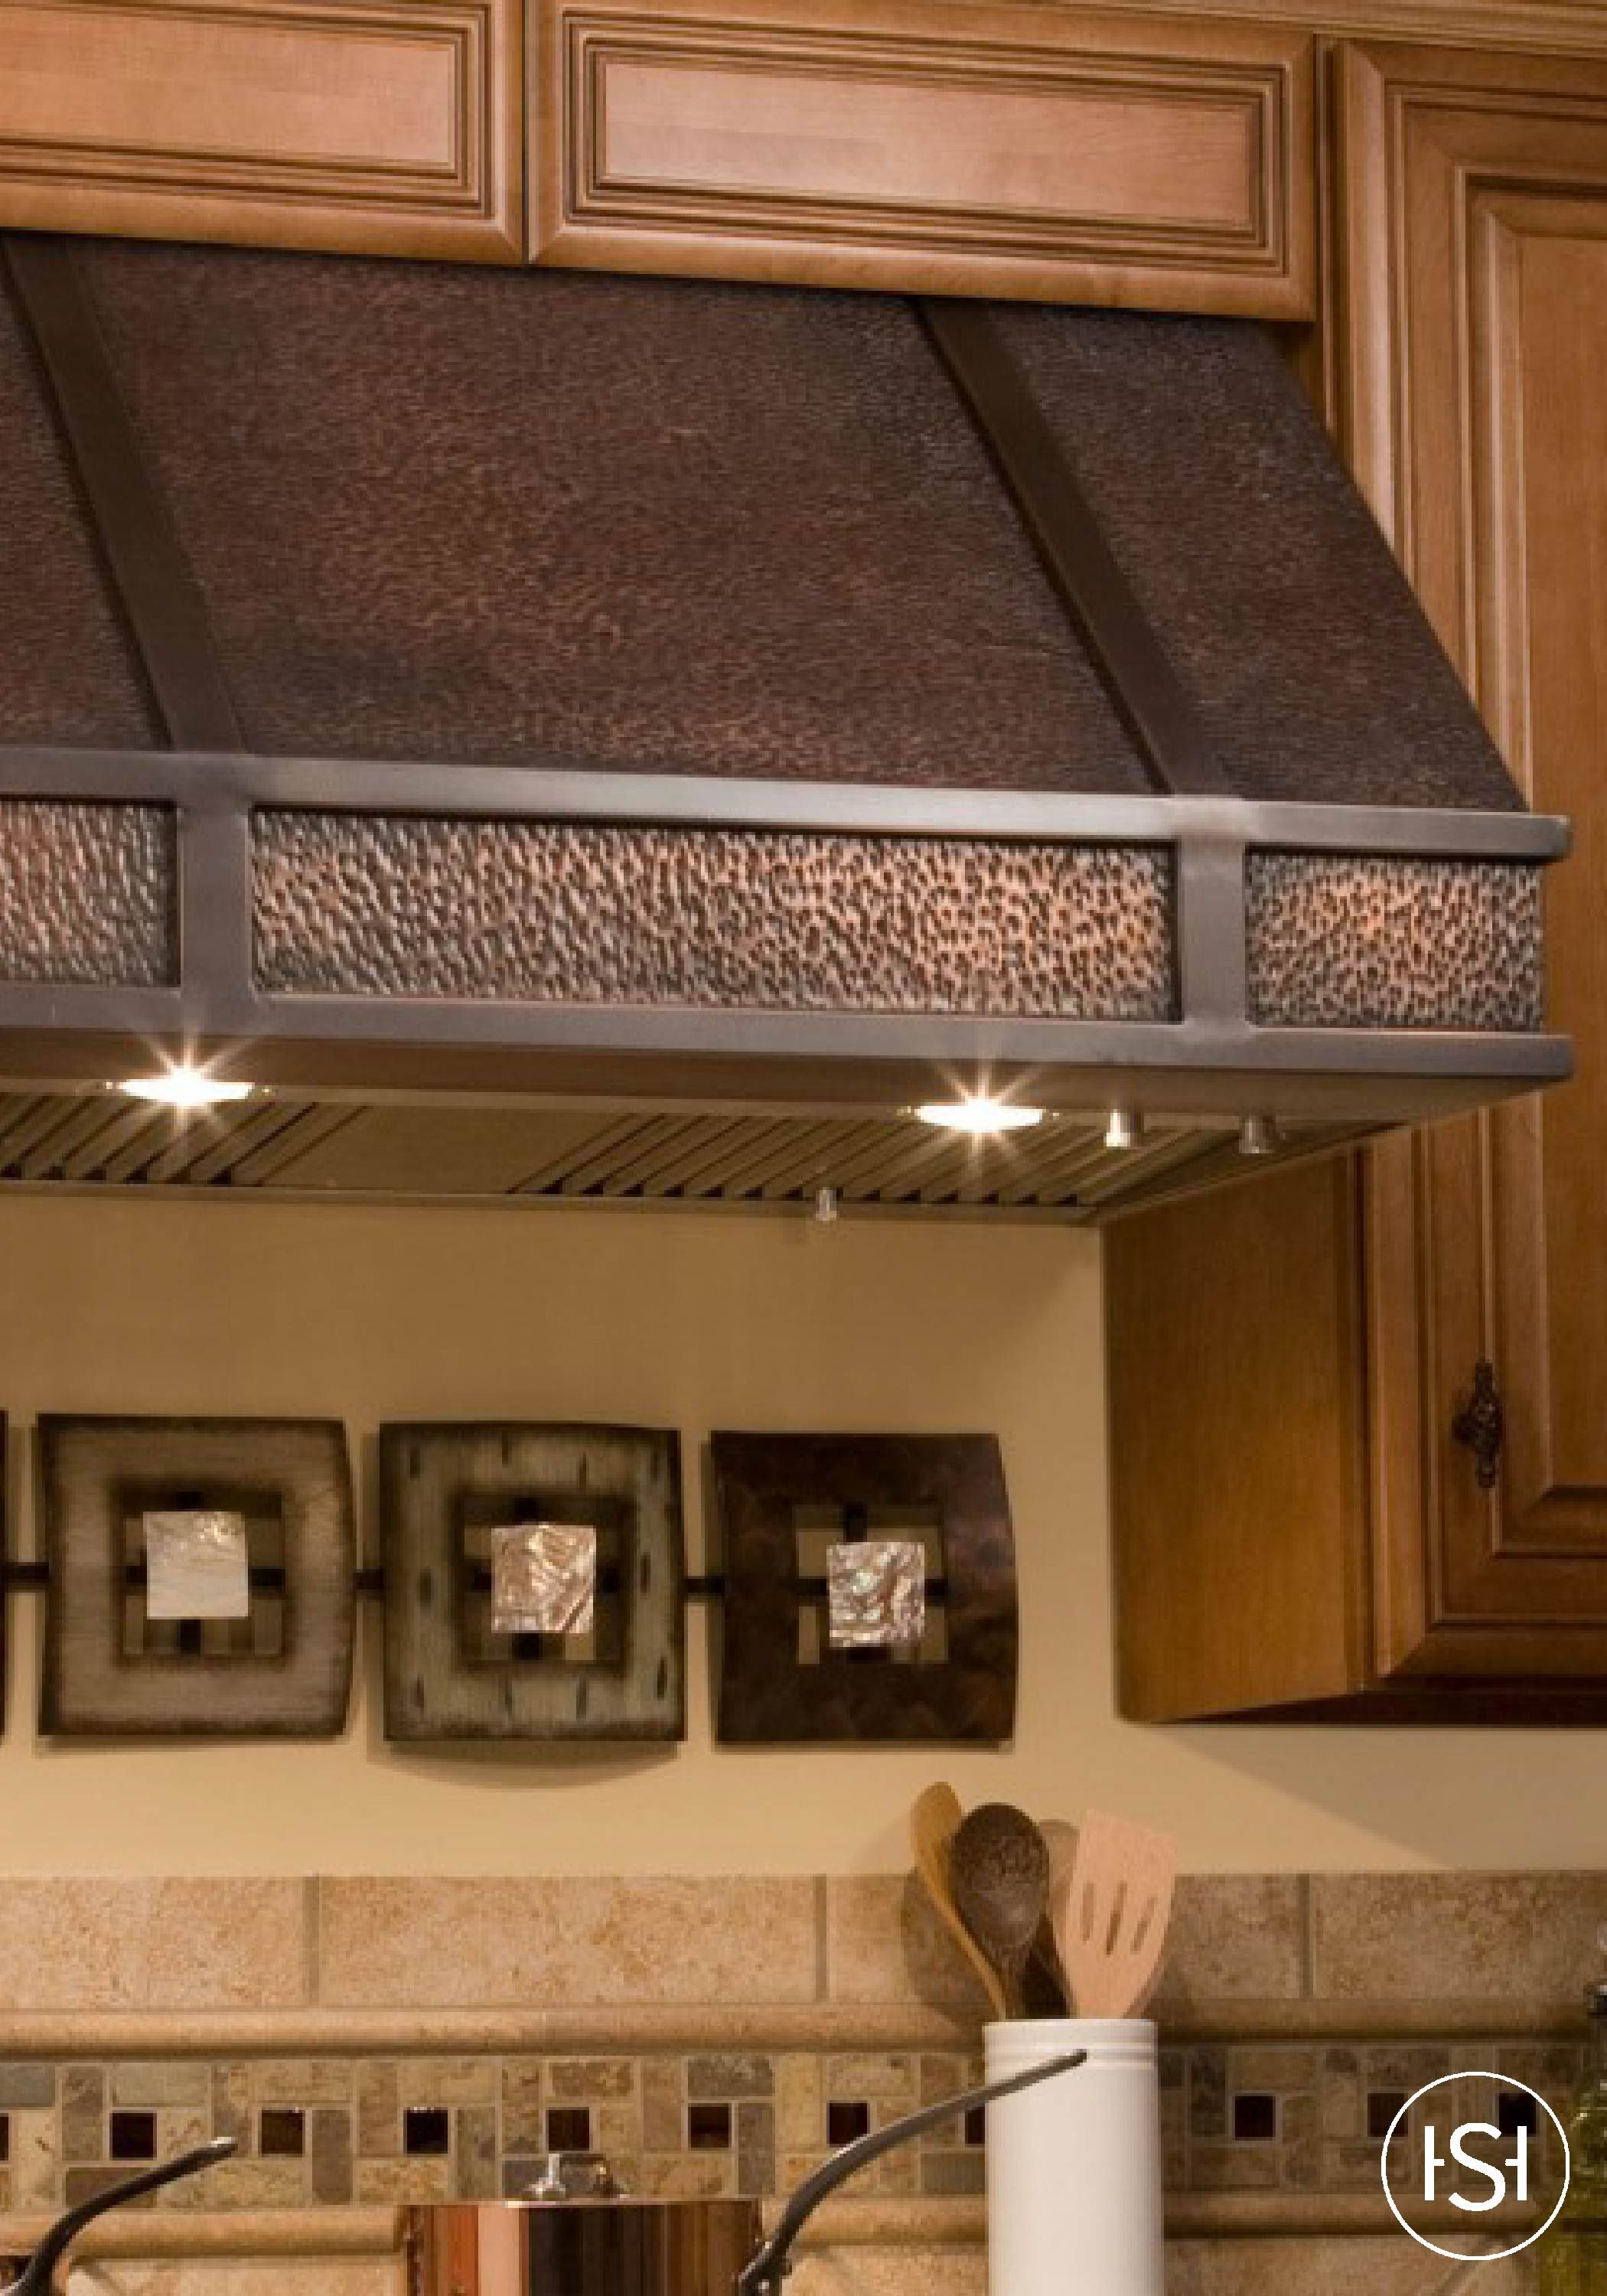 Freshen Up The Air And Style Of Your Kitchen With This Hammered Copper Wall Mount Range Hood Piece Will Finish Look Traditional Or